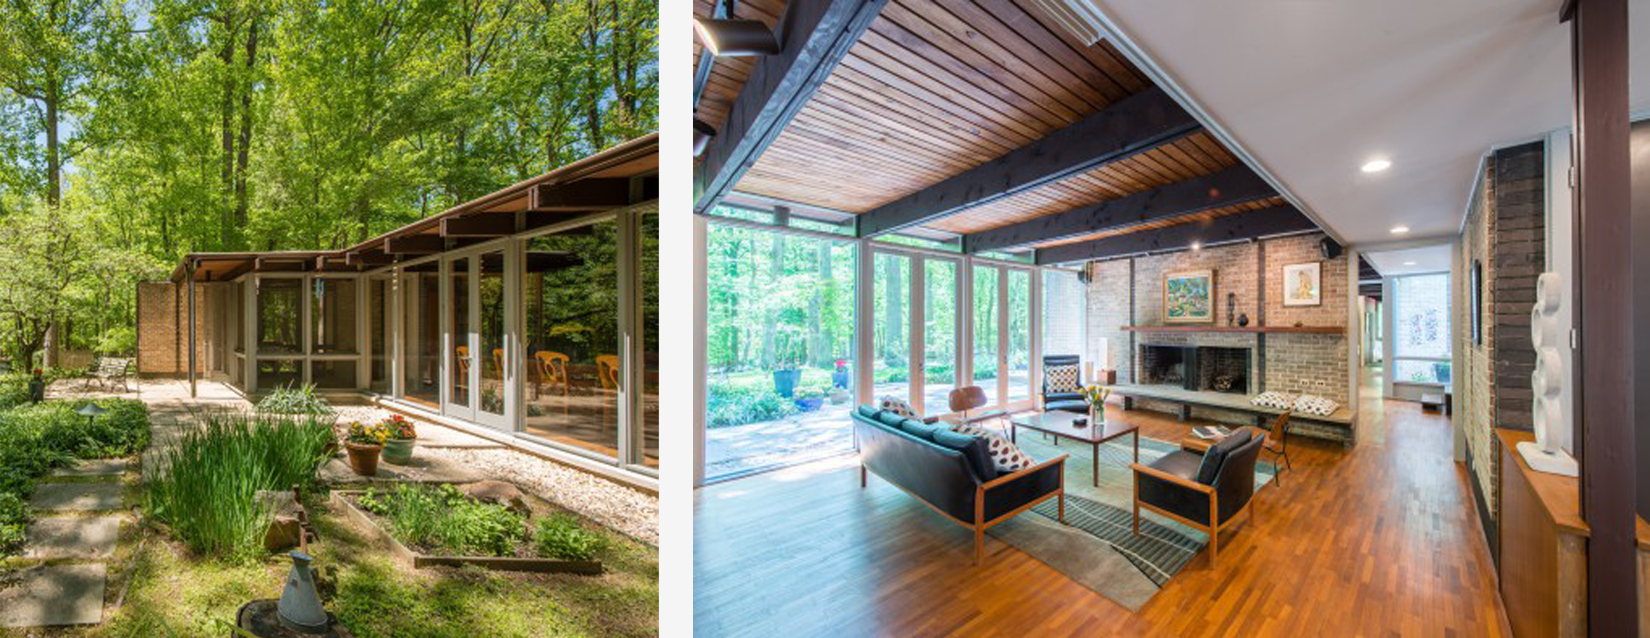 Owings mills property by architect james grieves is on the market via modern capital dc for